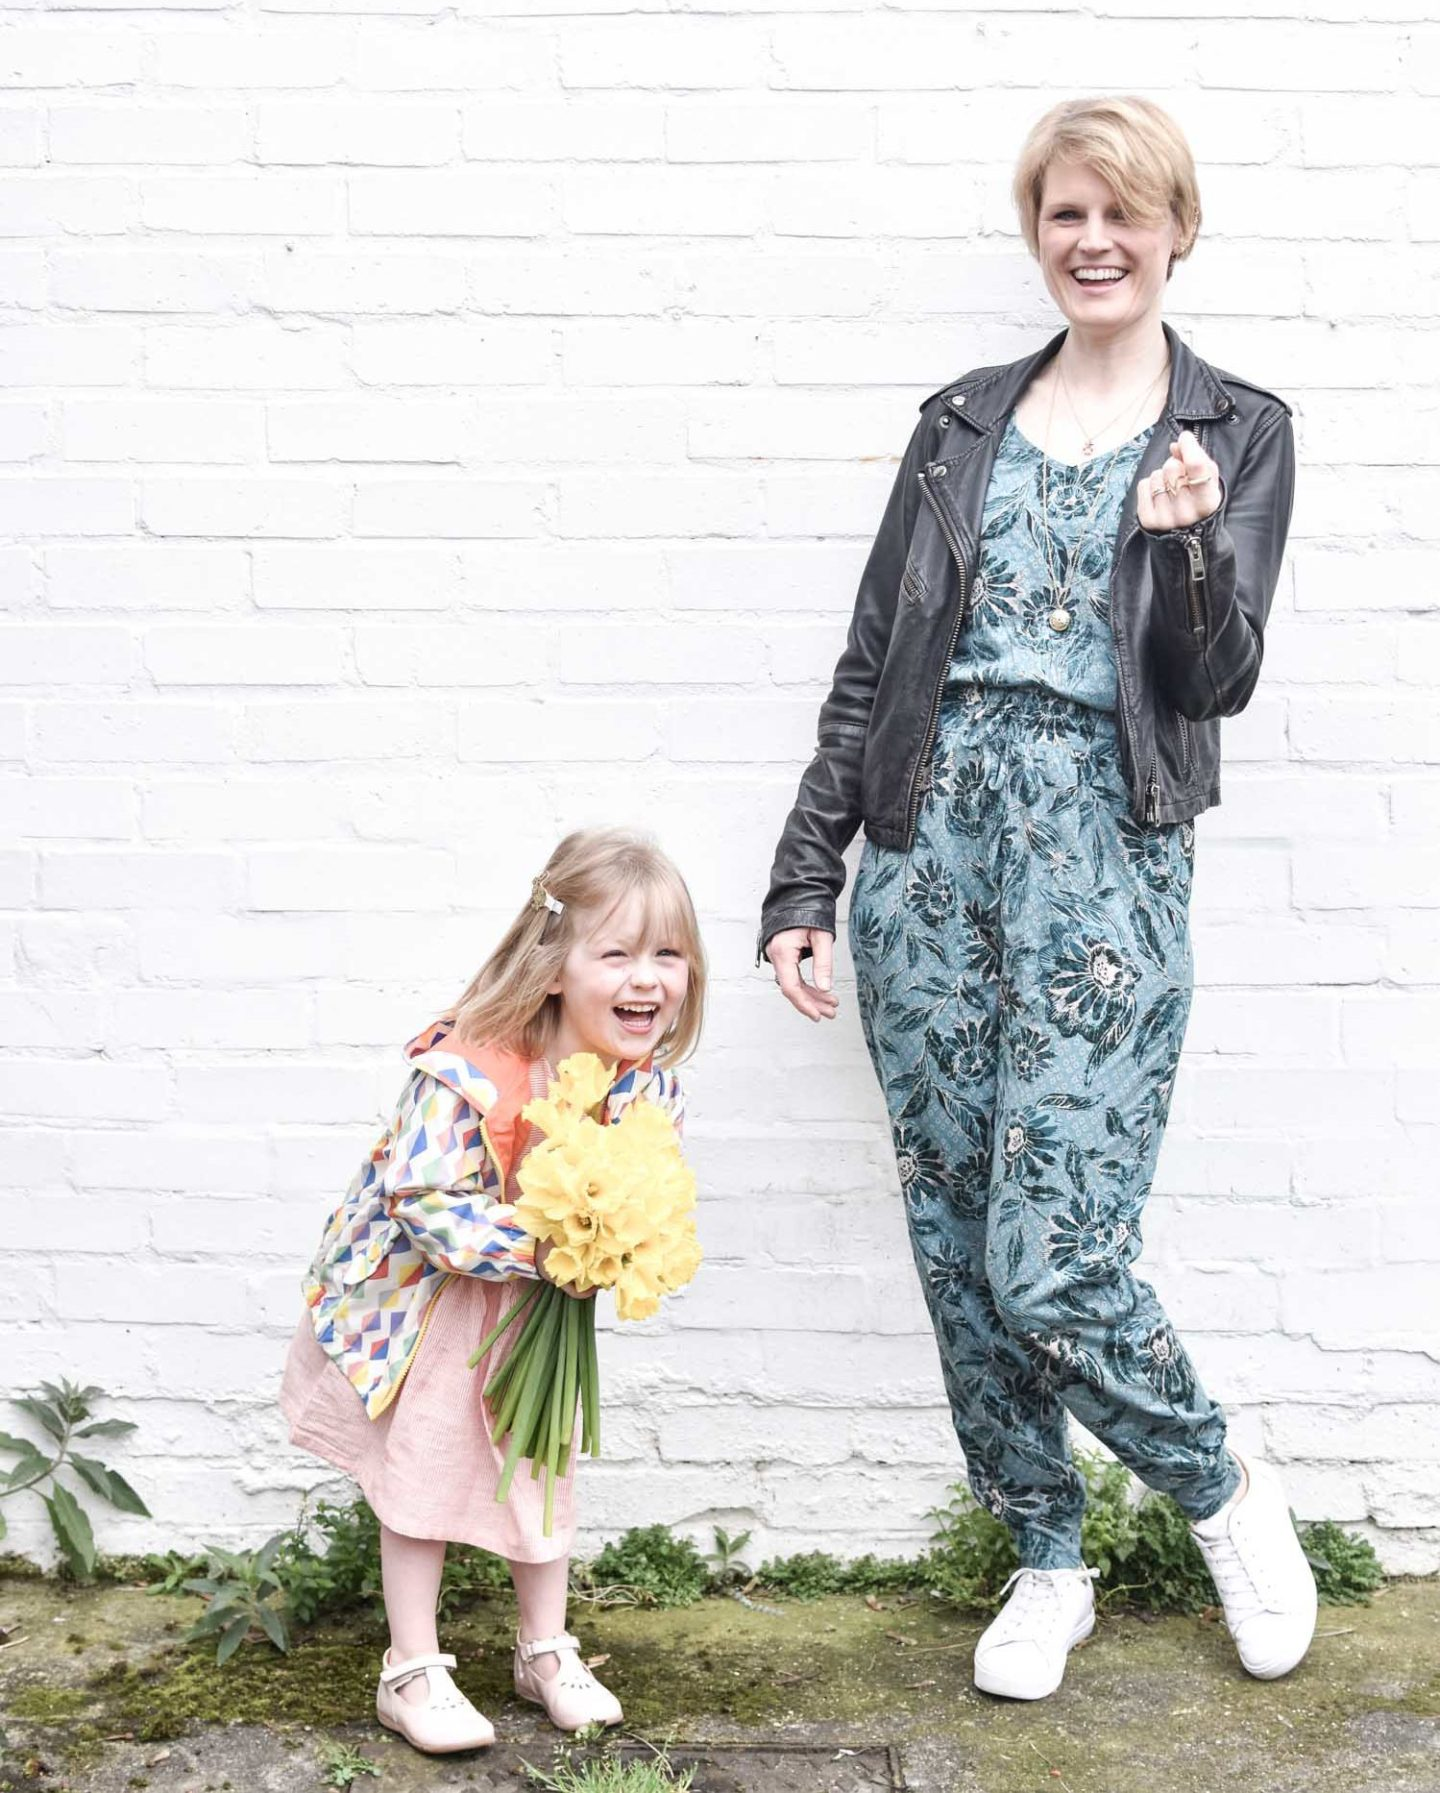 e58278ce9f3 Sustainable Style Blogger Karen Maurice of n4mummy wearing Thoughts floral  jumpsuit with a black leather jacket